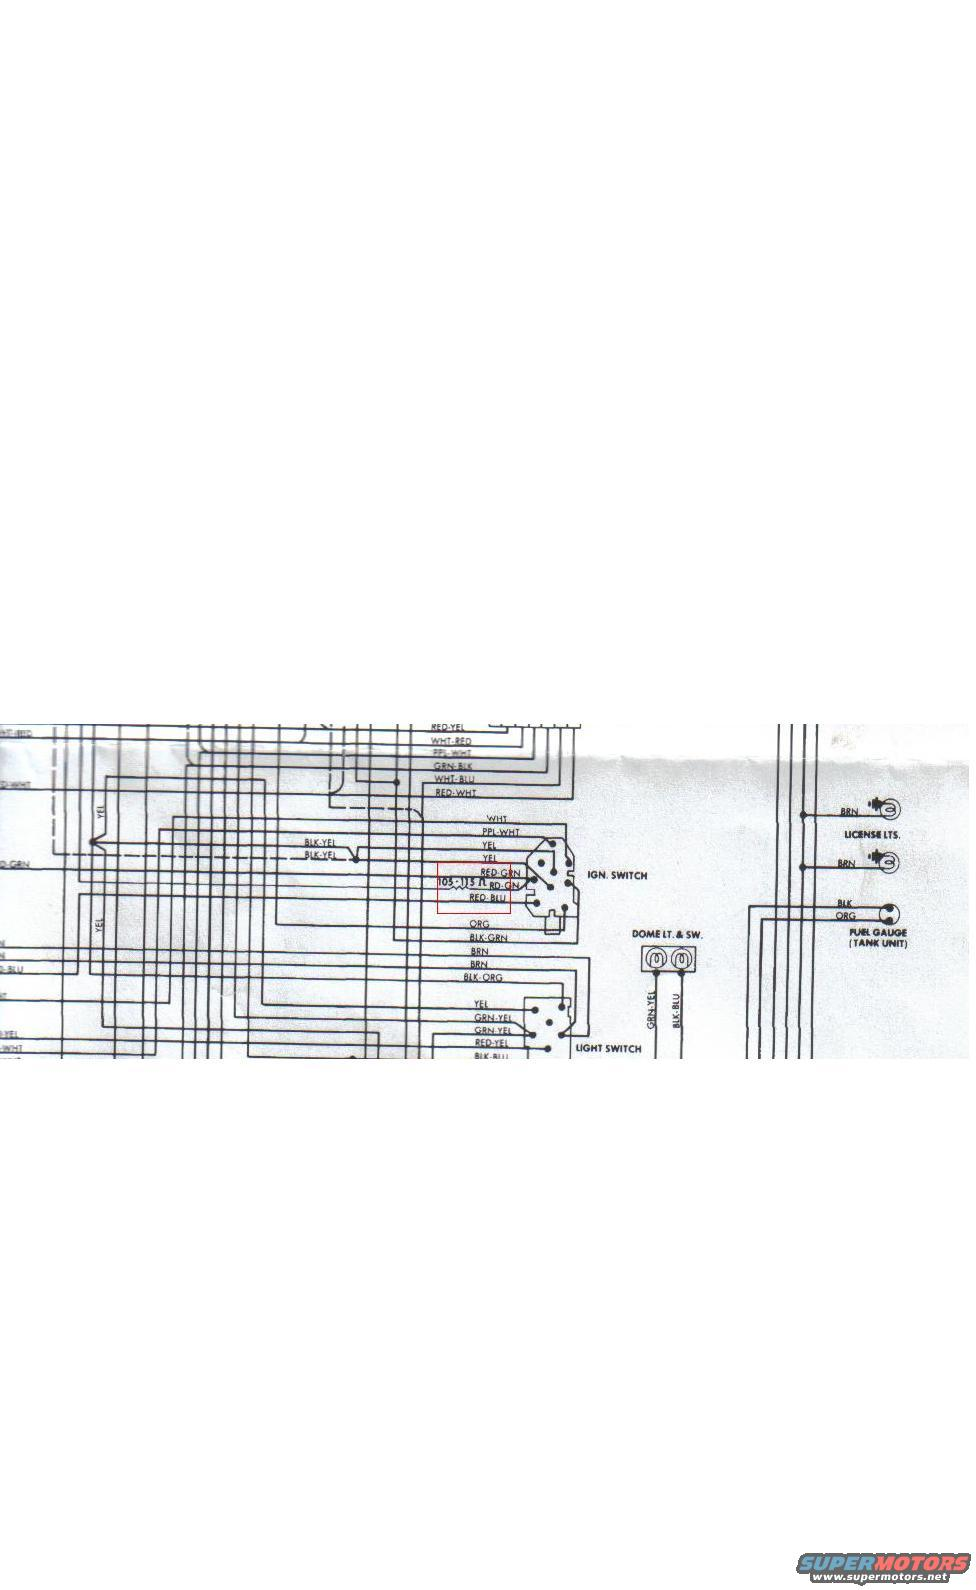 1976 ford f750 wiring diagram ford truck fuse diagram 2005